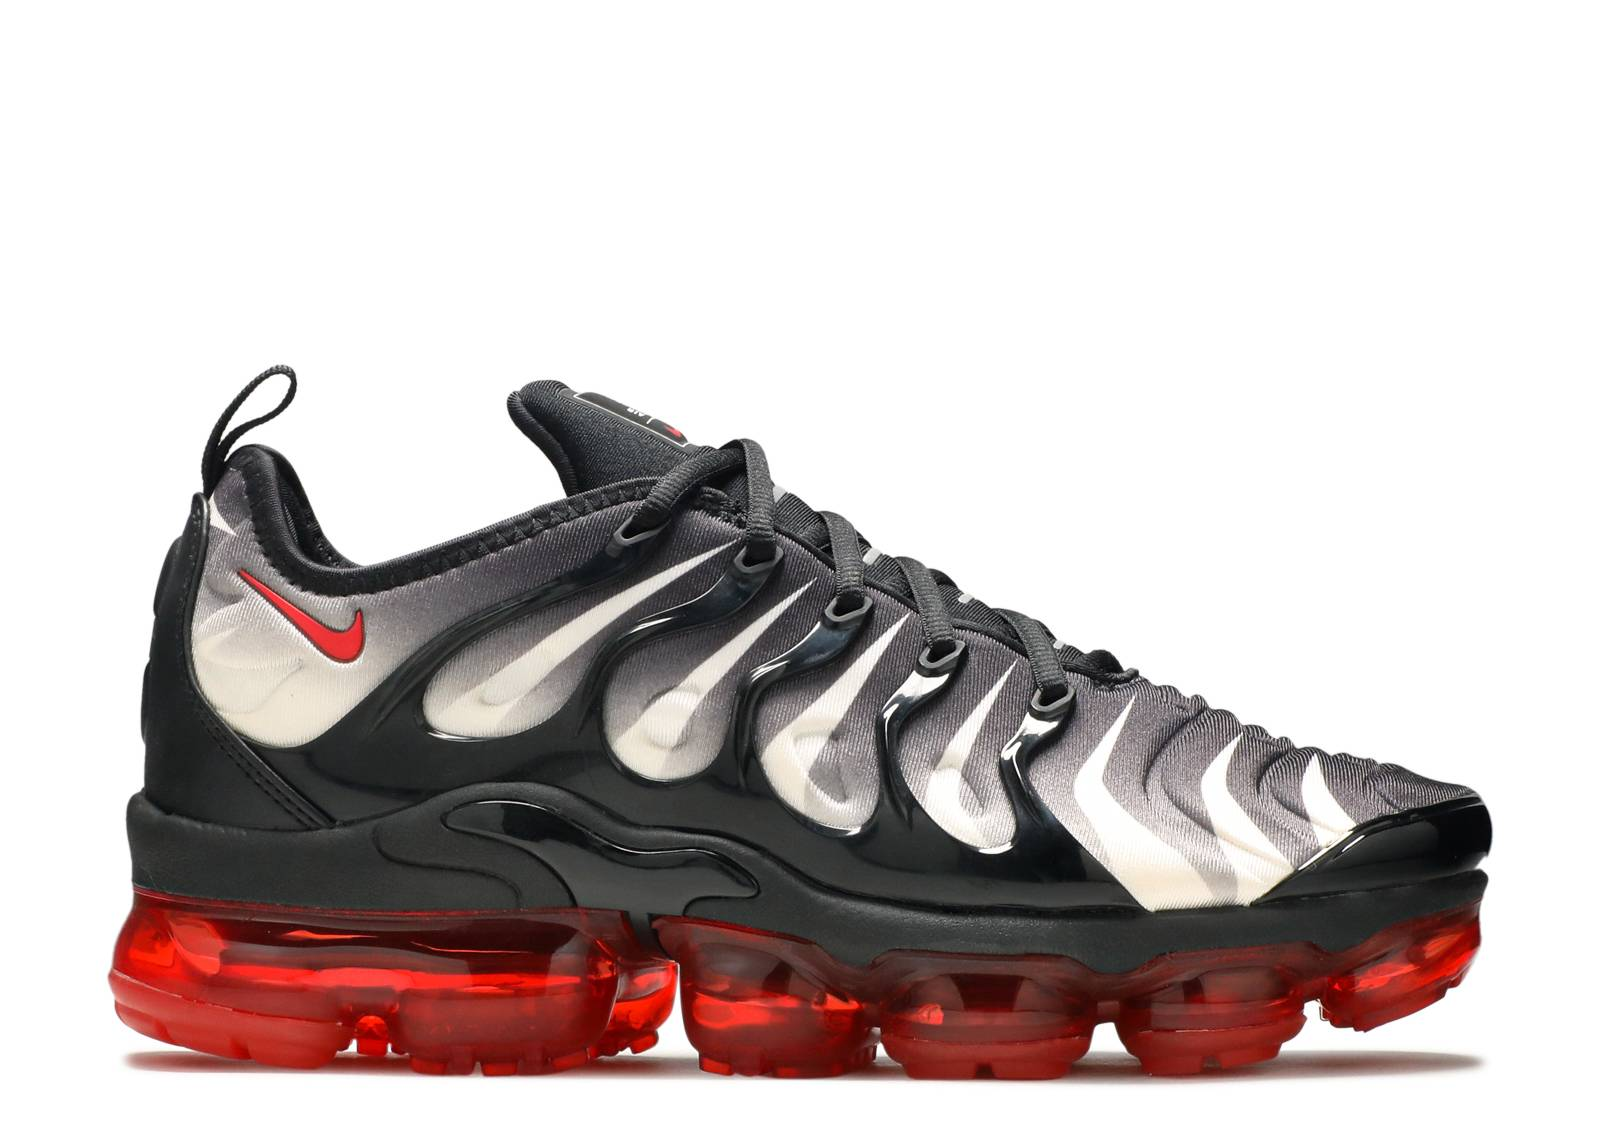 0cbf72e0b0f86 Air Vapormax Plus - Nike - AQ8632 001 - black speed red-white ...